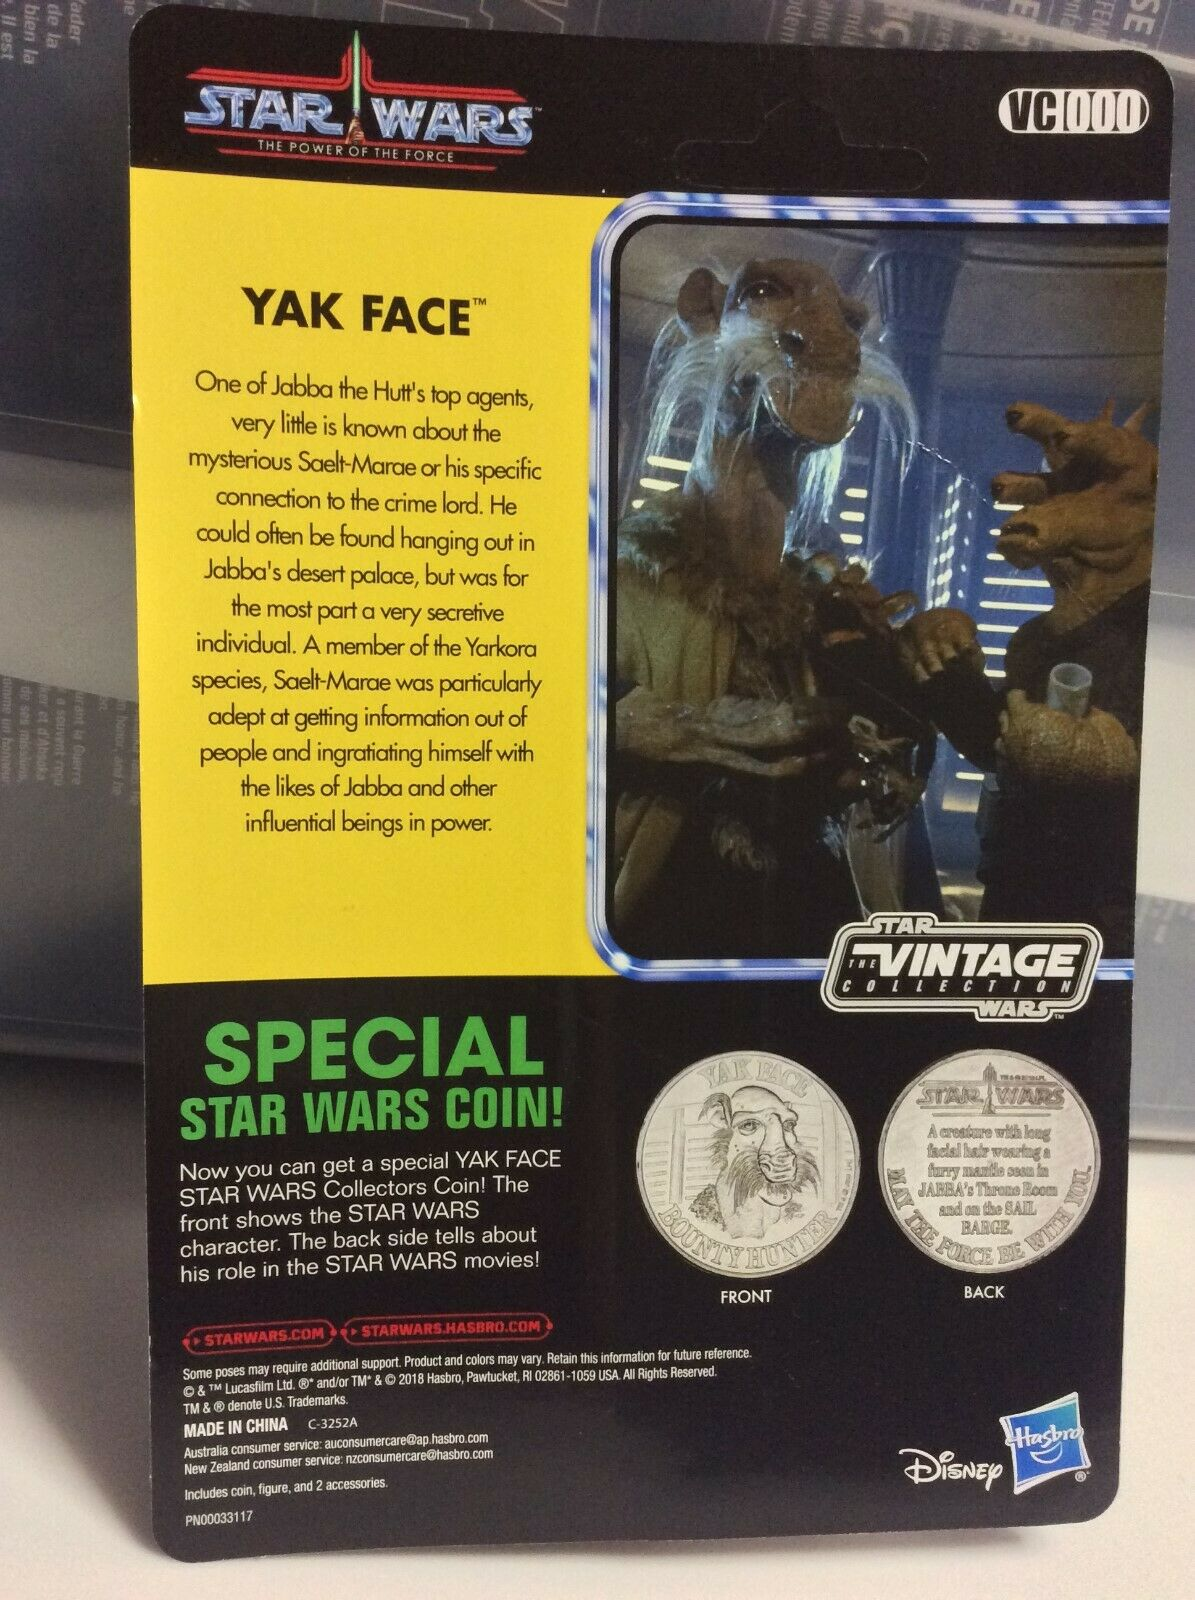 Star Wars Haslab The The The Vintage Collection Yak Face Action Figure with POTF Coin 5f95a1